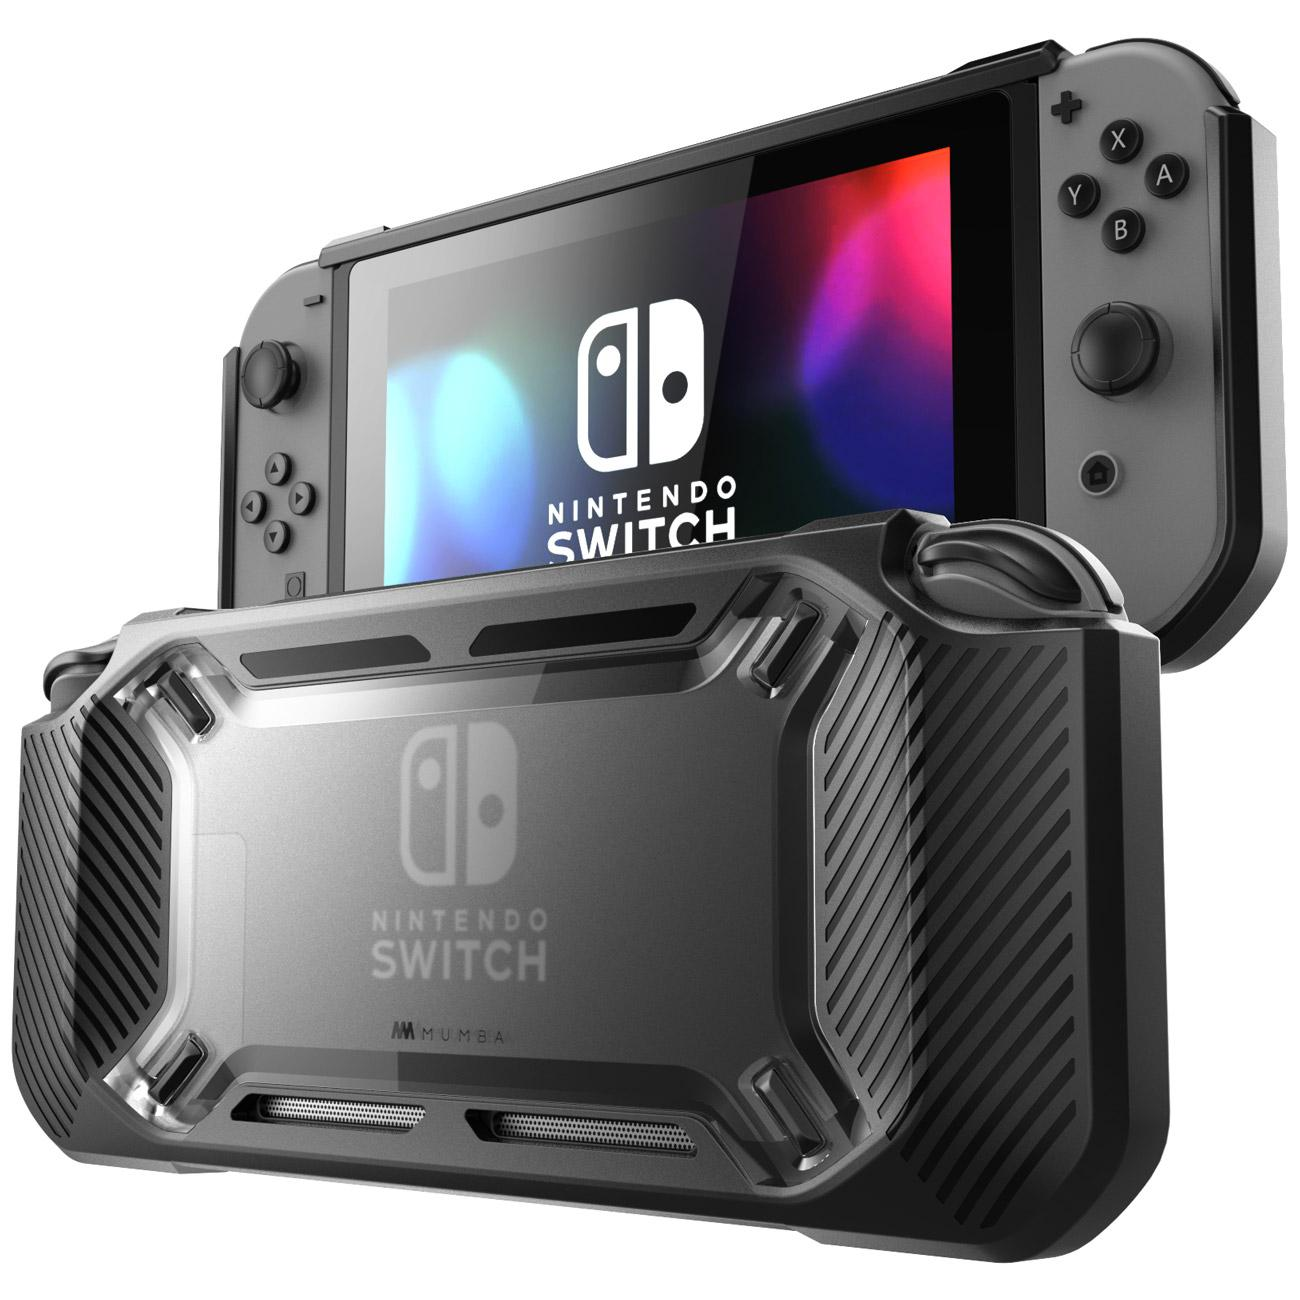 Nintendo Switch Vertical Case Helps Play Arcade Classics Easily